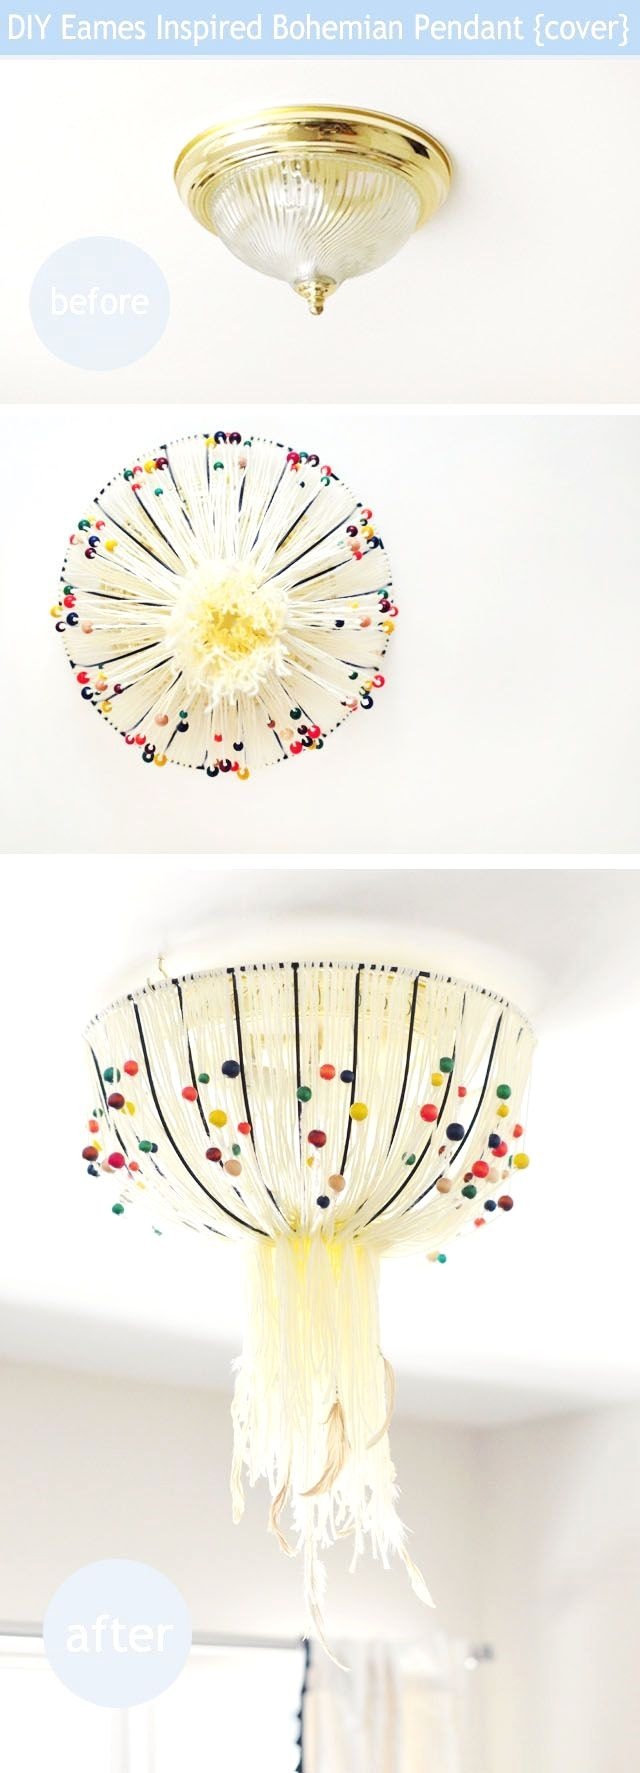 Diy Eames Inspired Bohemian Pendant Lamp To Cover Old Ugly Ceiling Rewiring Fixtures Without Any